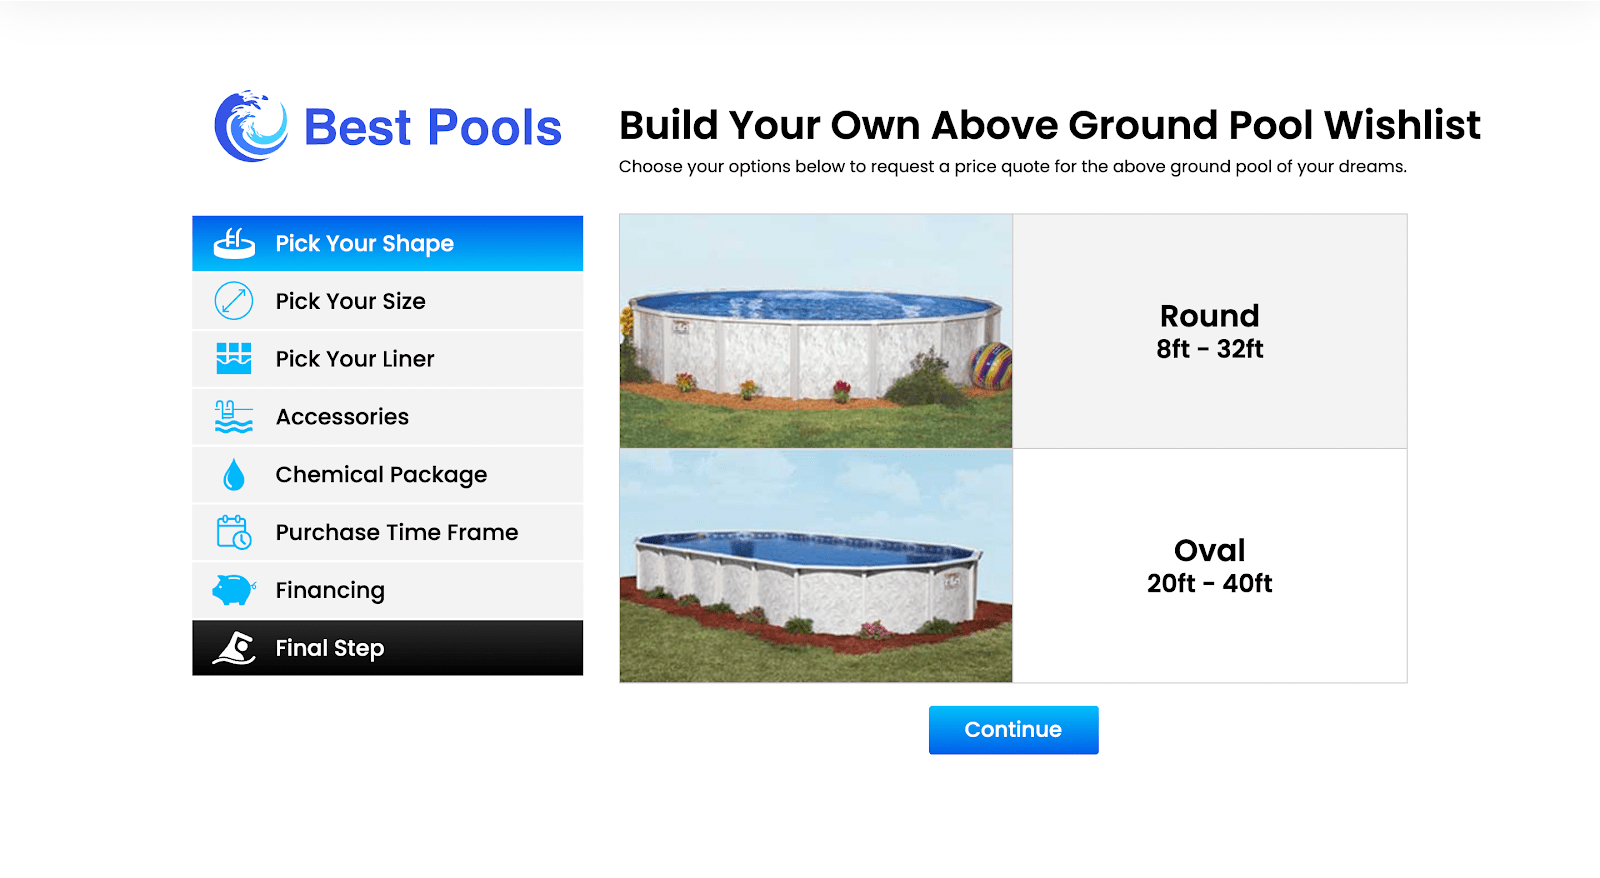 Build Your Own Above Ground Pool Wishlist